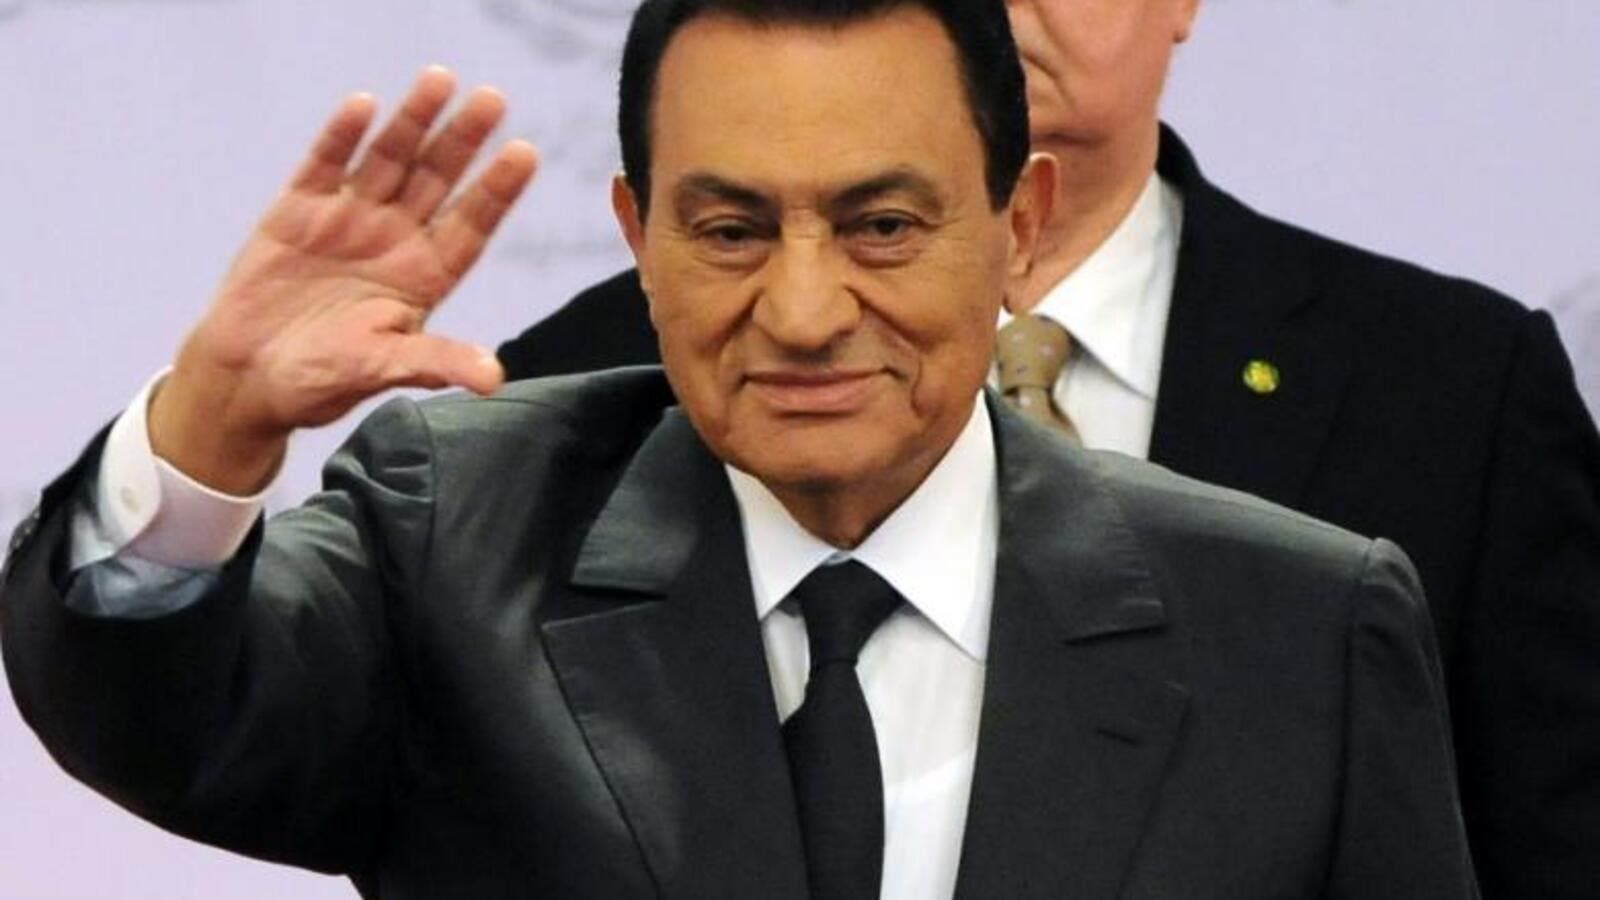 Former Egyptian President Hosni Mubarak and his two sons face corruption charges for using public funds to upgrade private properties. (Albawaba.com/File)